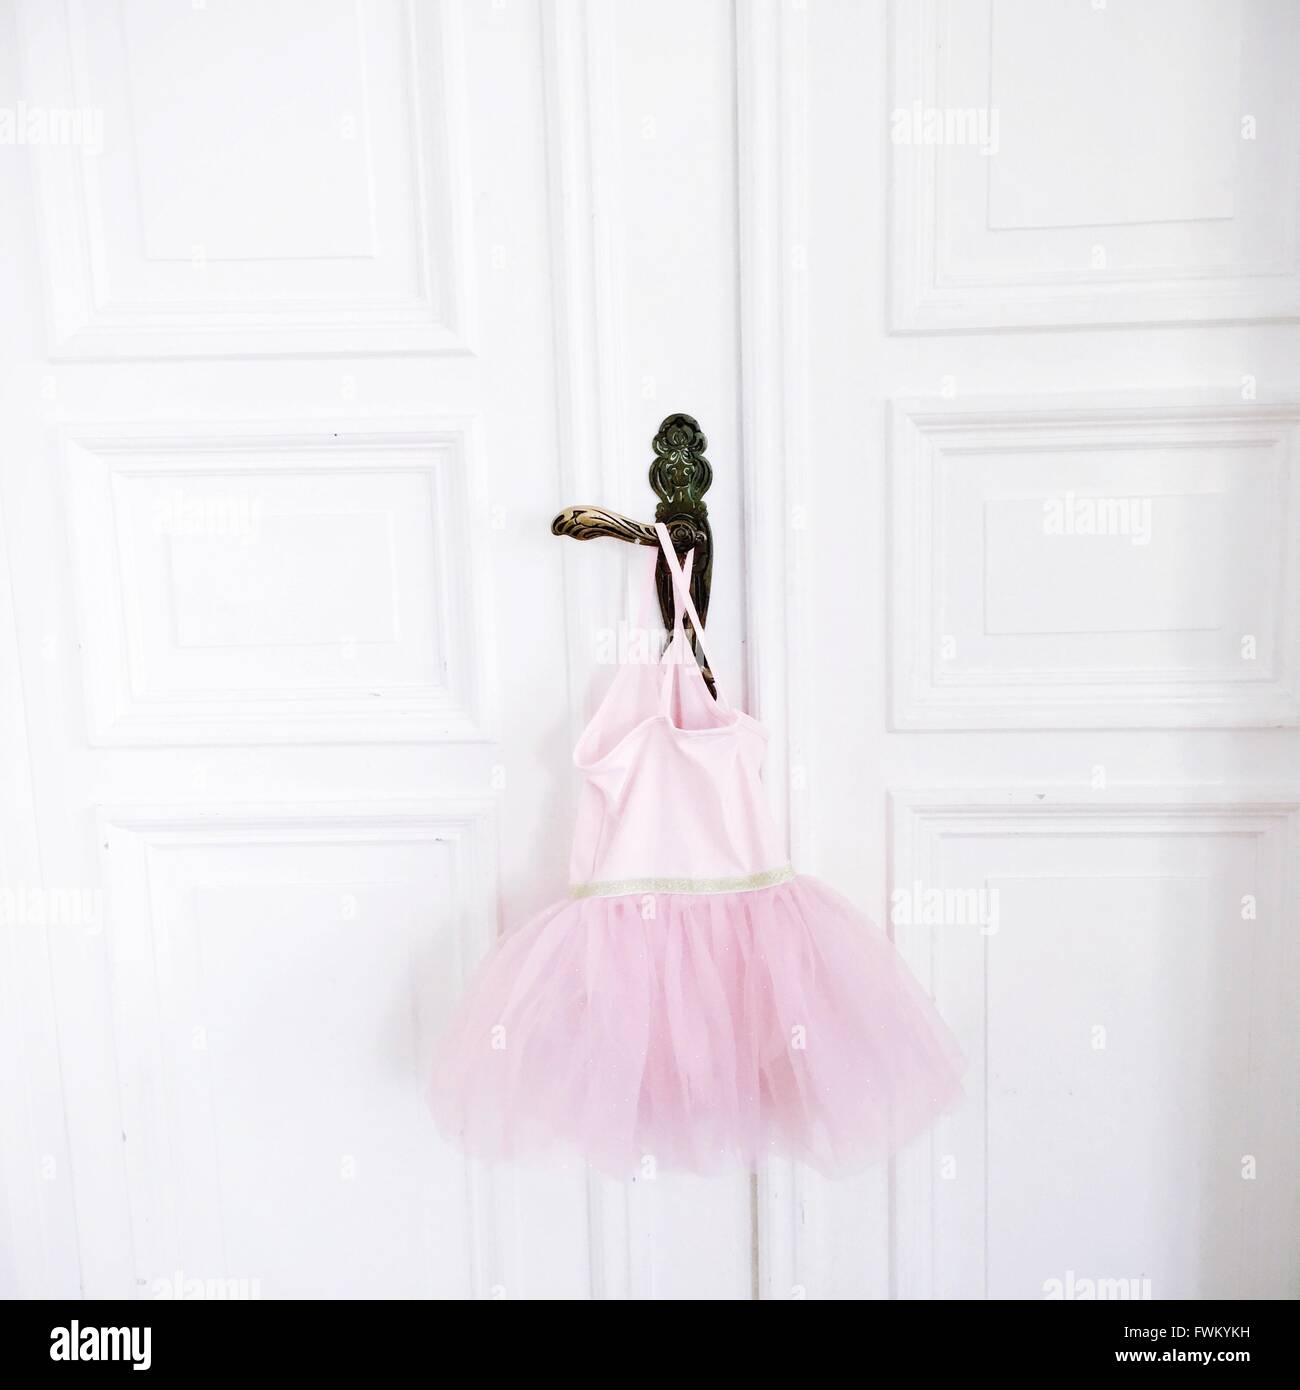 Tutu rose accroché sur la poignée de la porte Photo Stock